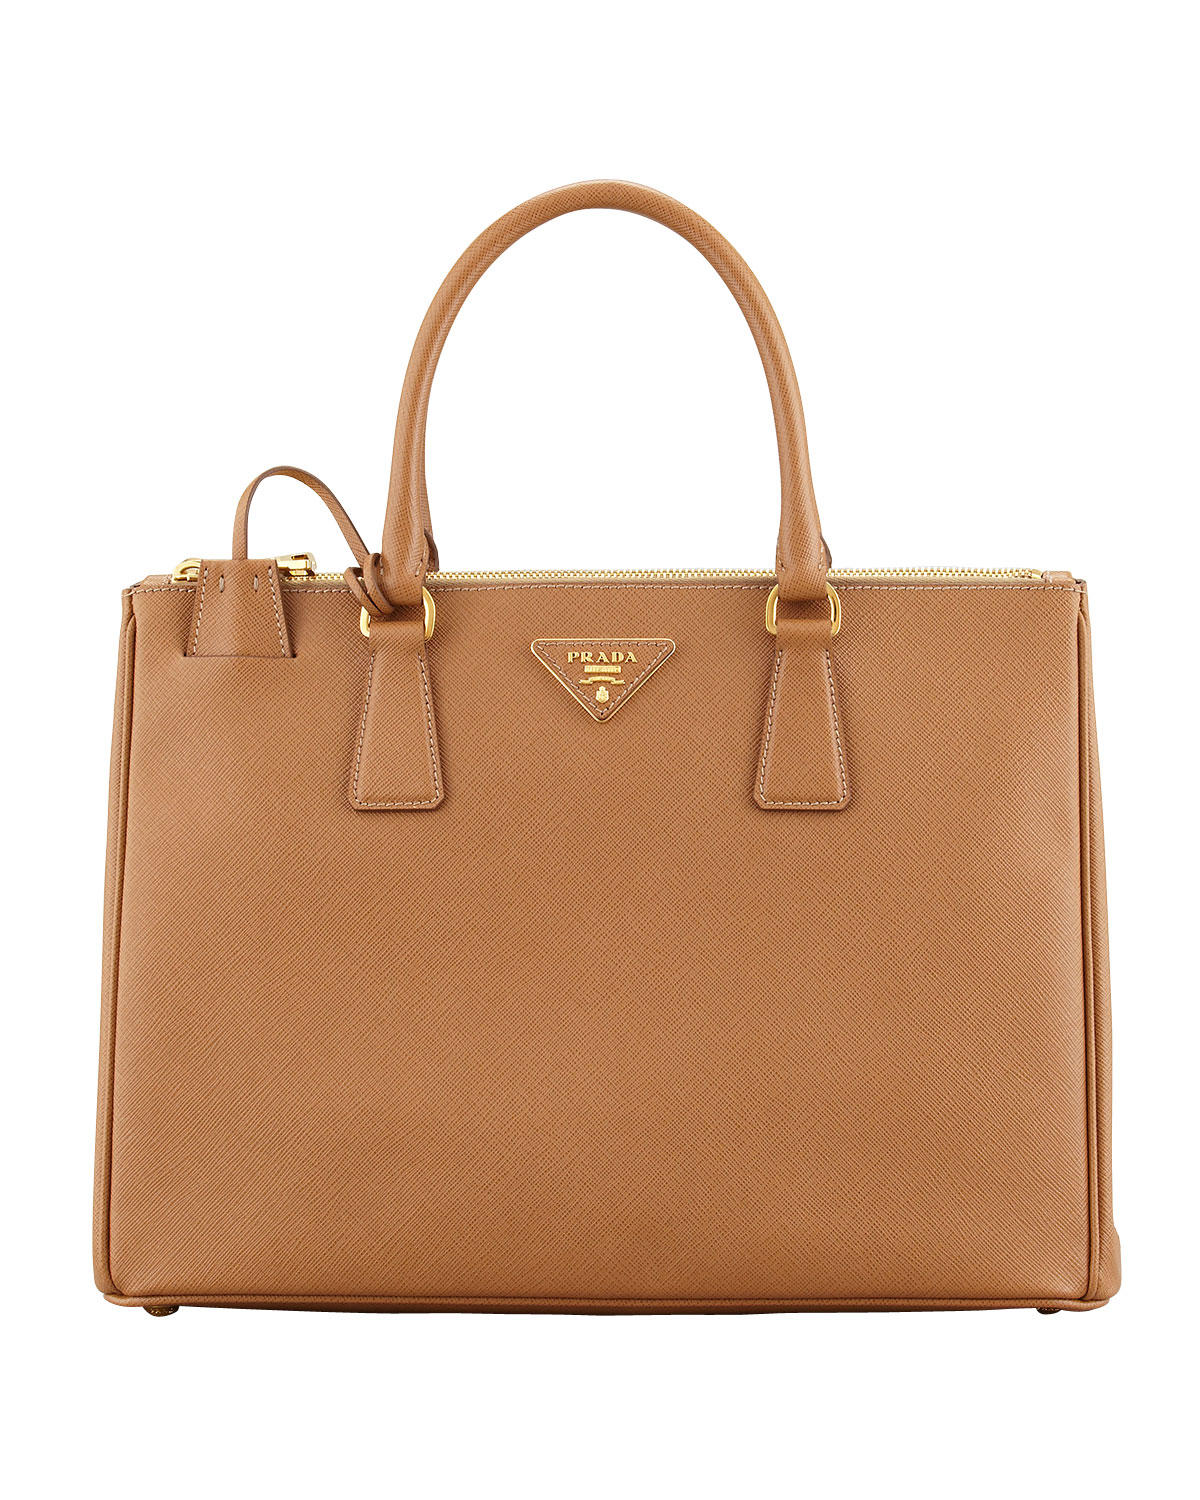 4b0e30b63cdf Prada Saffiano Double-Zip Executive Tote Bag, Brown (Caramel ...